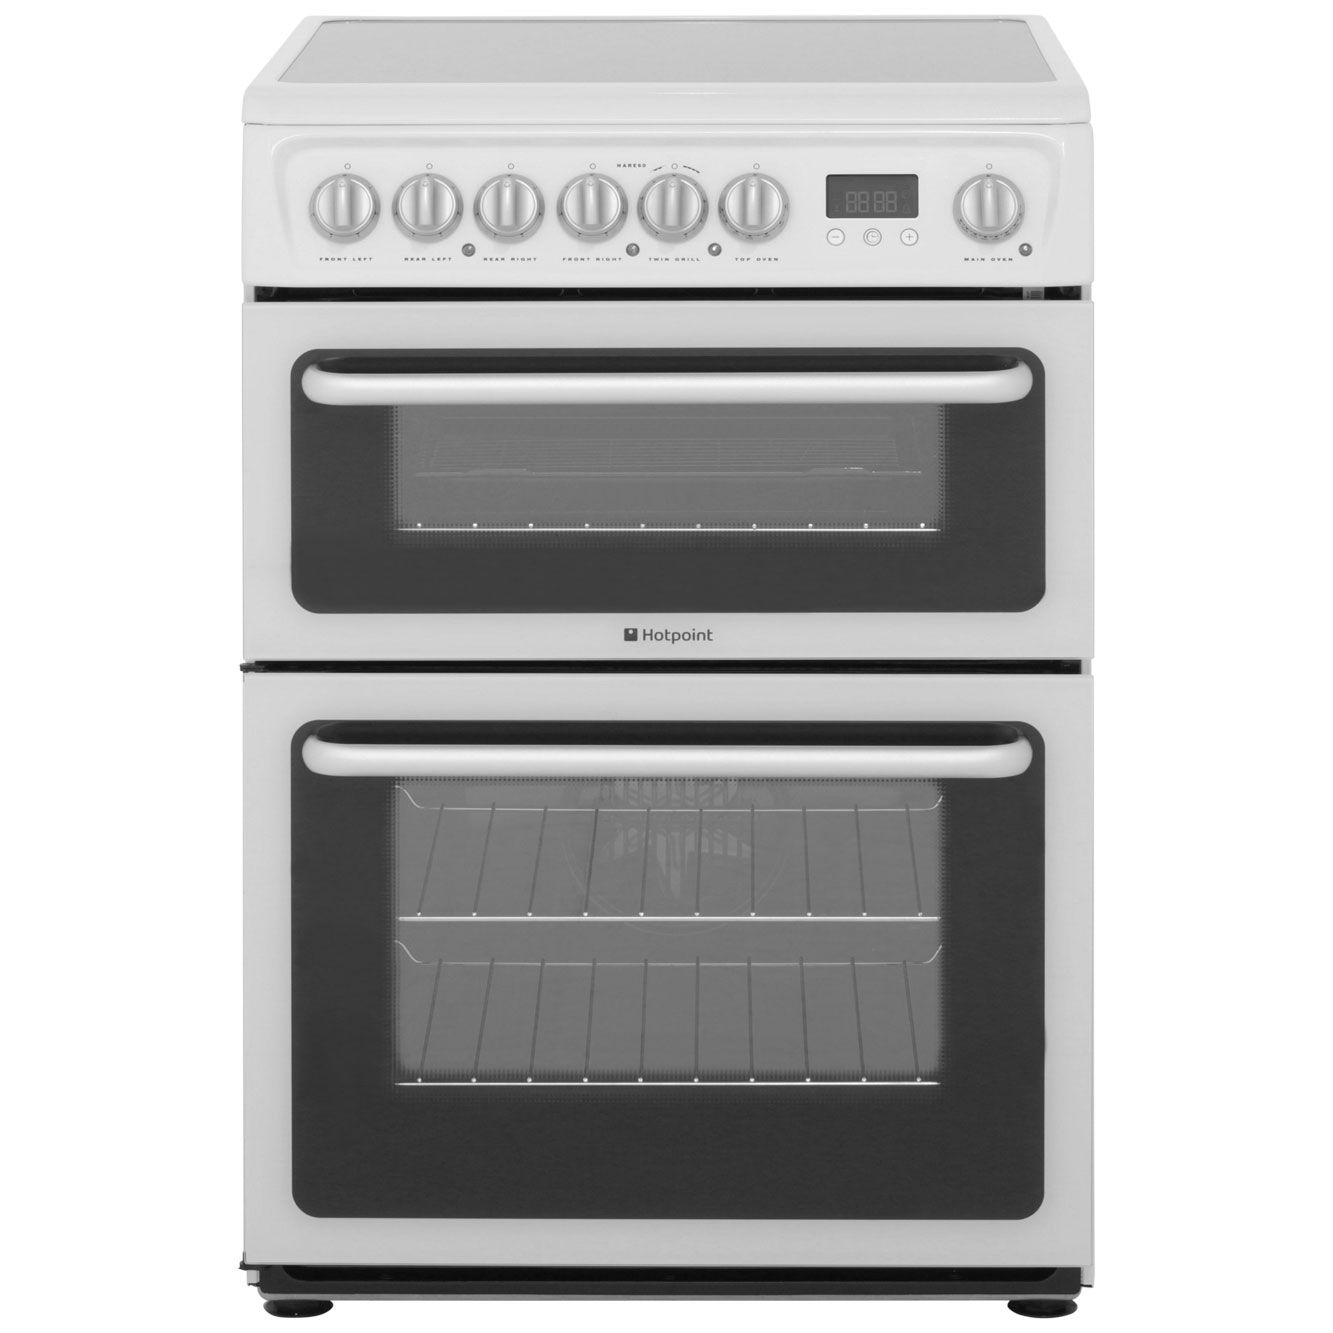 Medium image of hotpoint freestanding electric cooker   hare60p   ao com    339 00